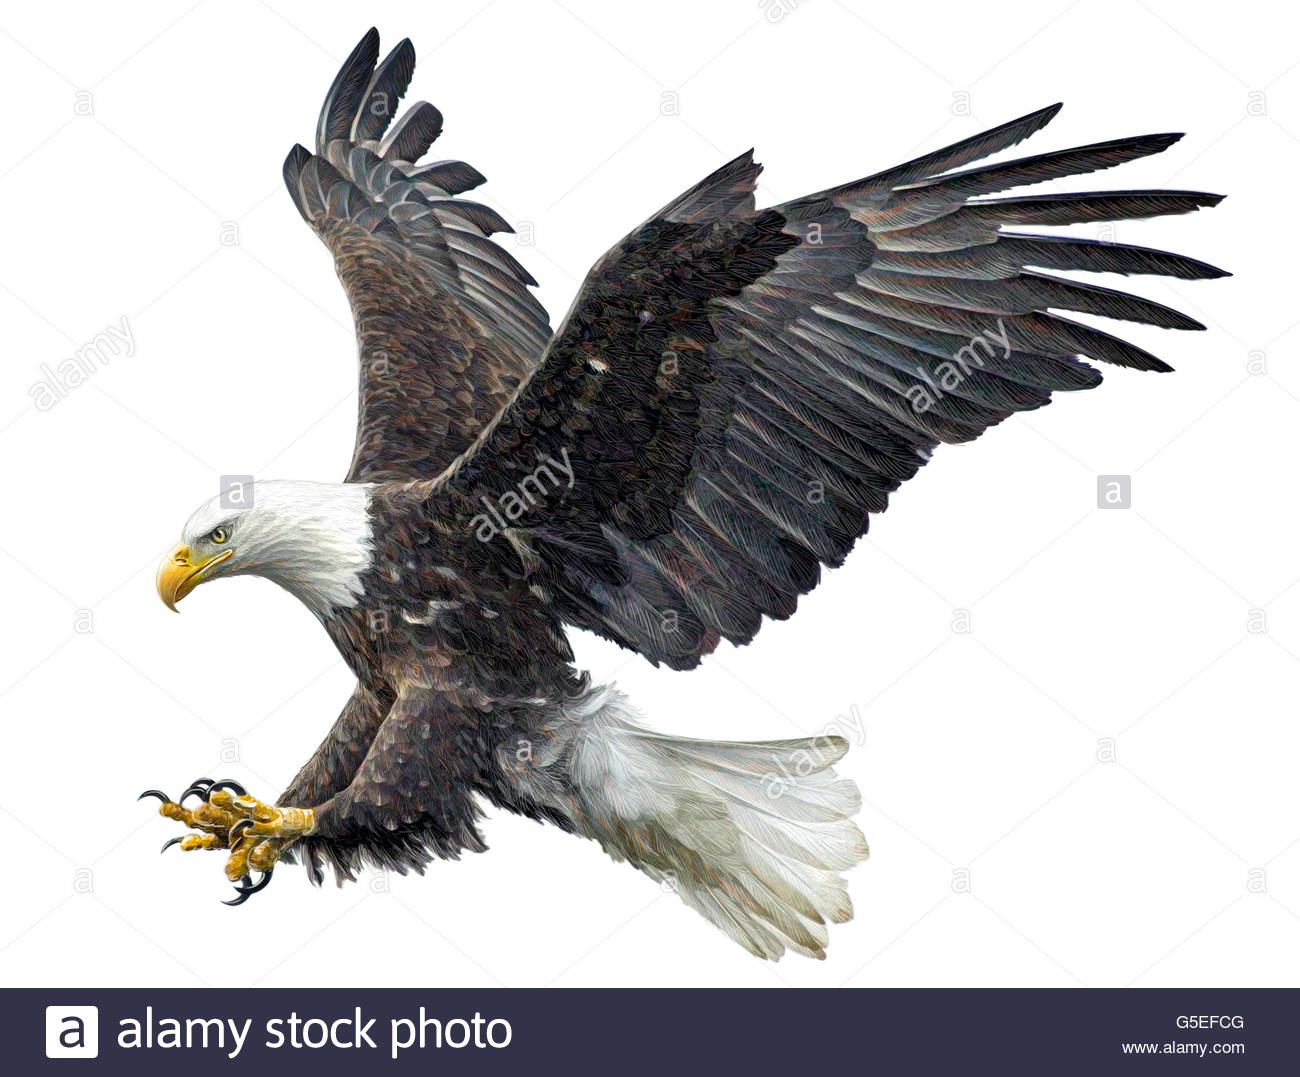 1300x1077 Eagle In Flight Drawing Bald Eagle Flying Cut Out Stock Images